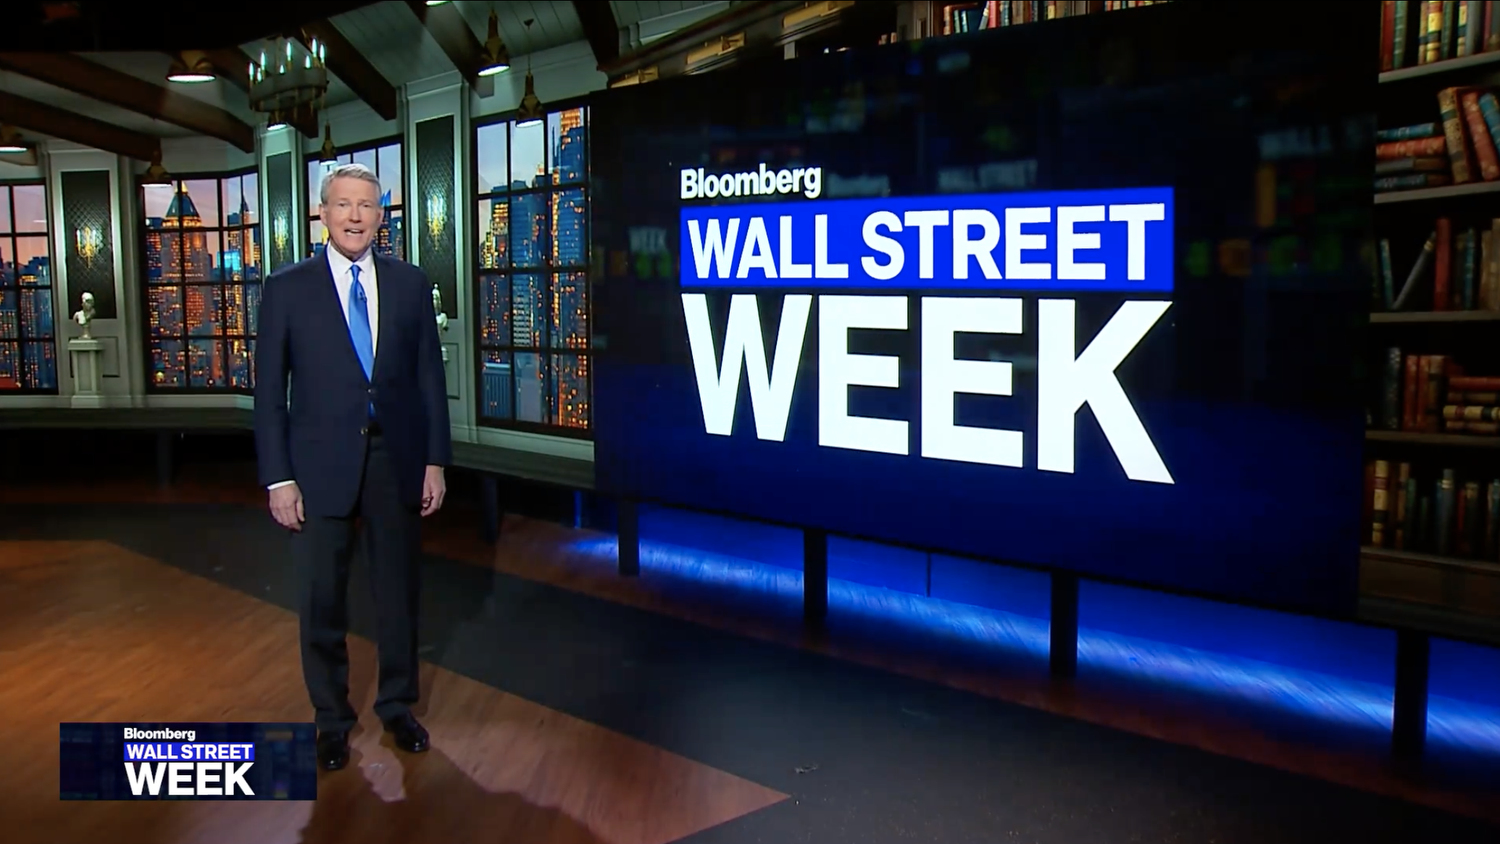 ncs_Bloomberg-Wall-Street-Week-Graphics_0001